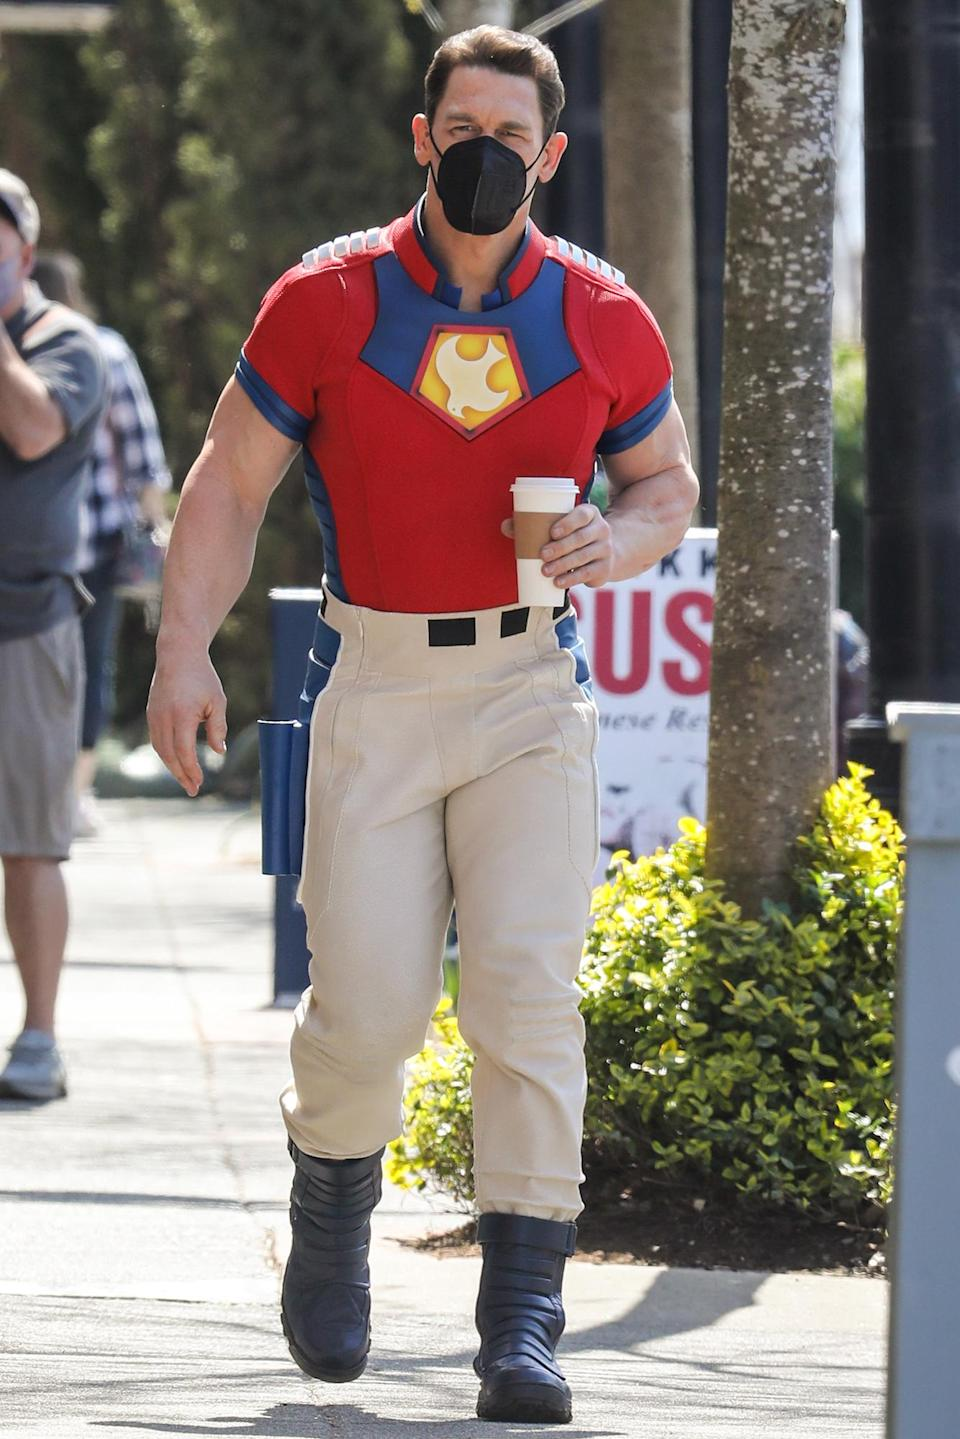 <p>John Cena is spotted in costume on the set of HBO's <em>The Peacemaker</em> on Thursday in Vancouver.</p>